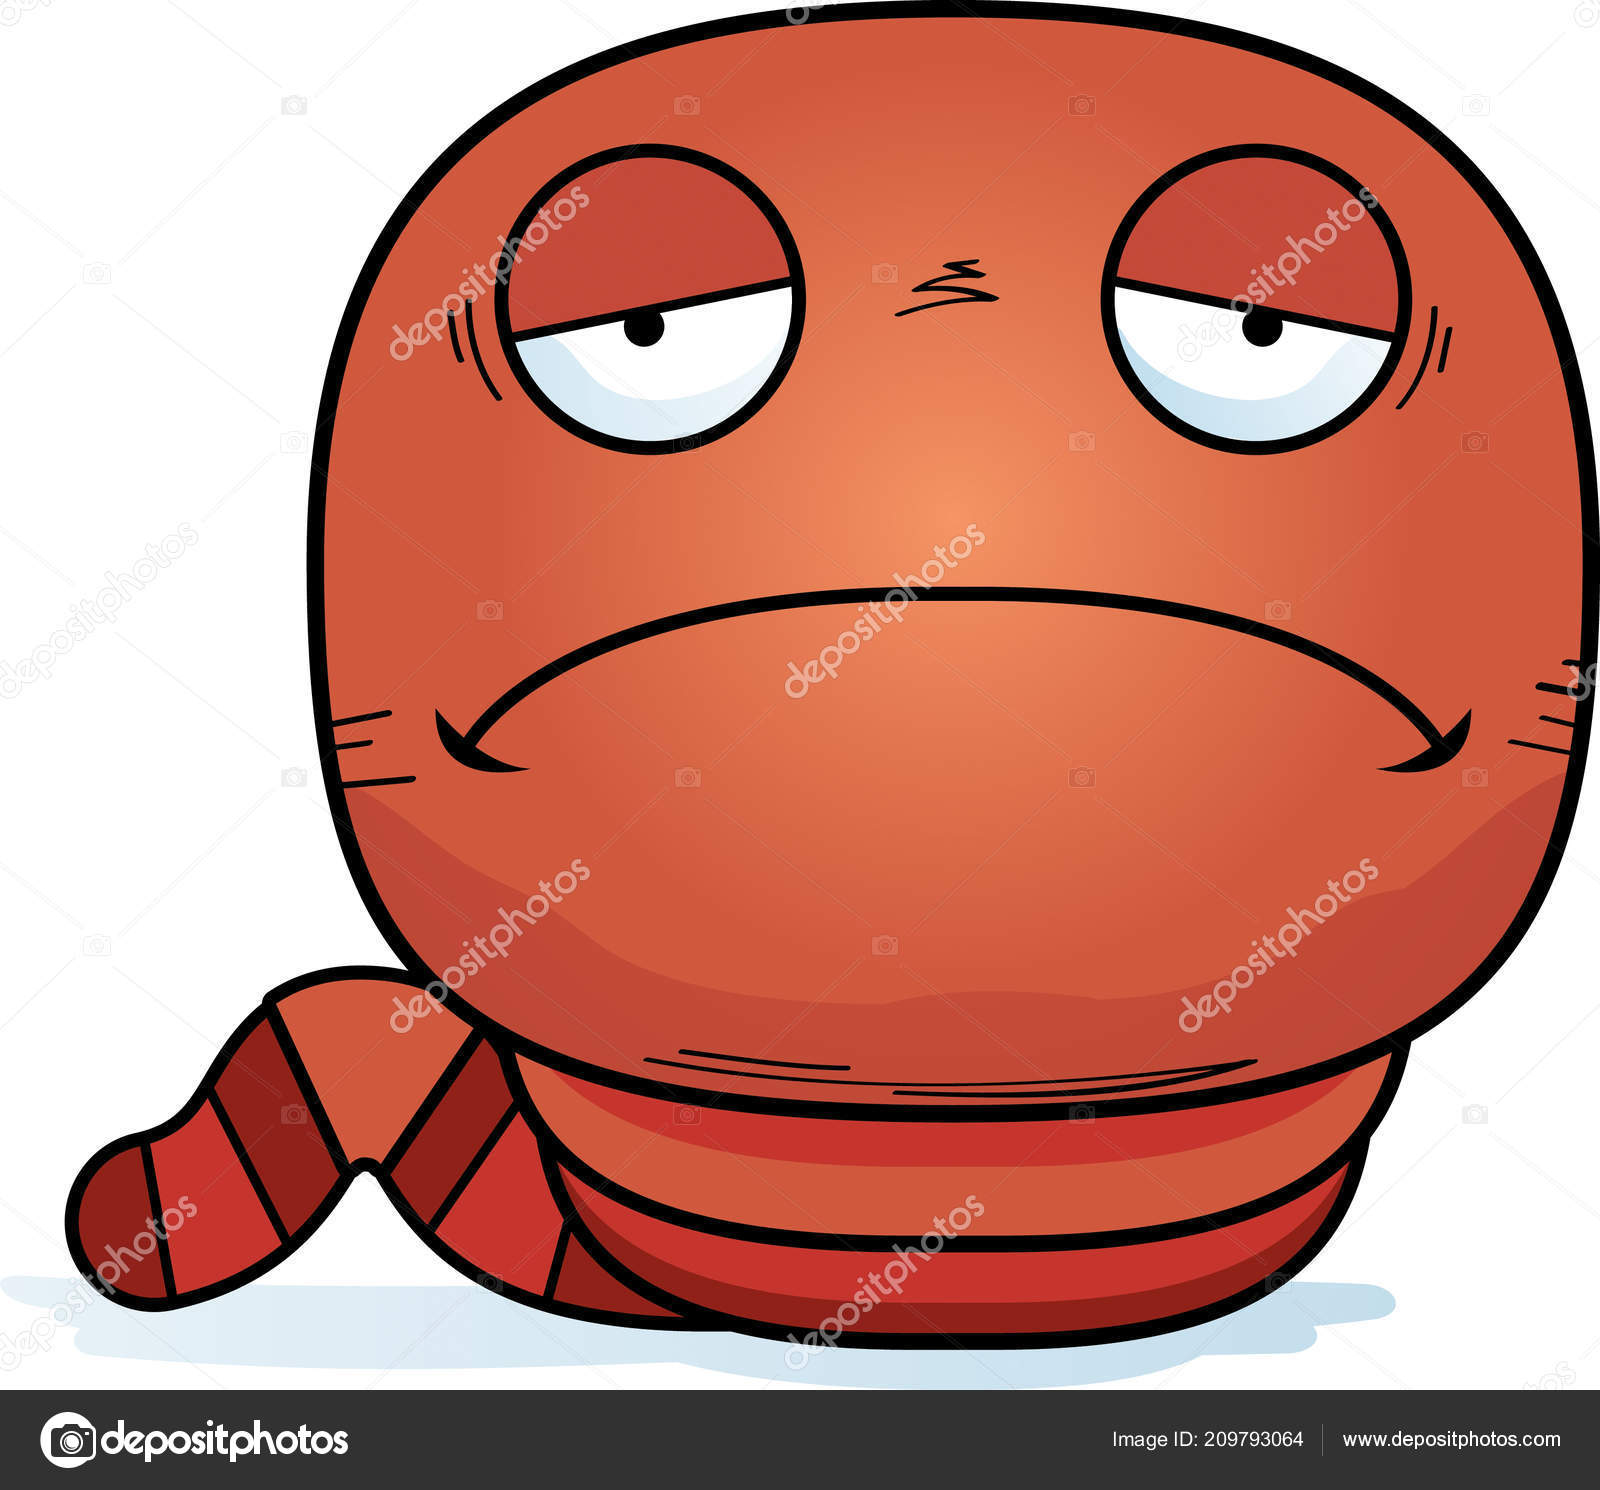 Cartoon Illustration Worm Looking Sad Stock Vector C Cthoman